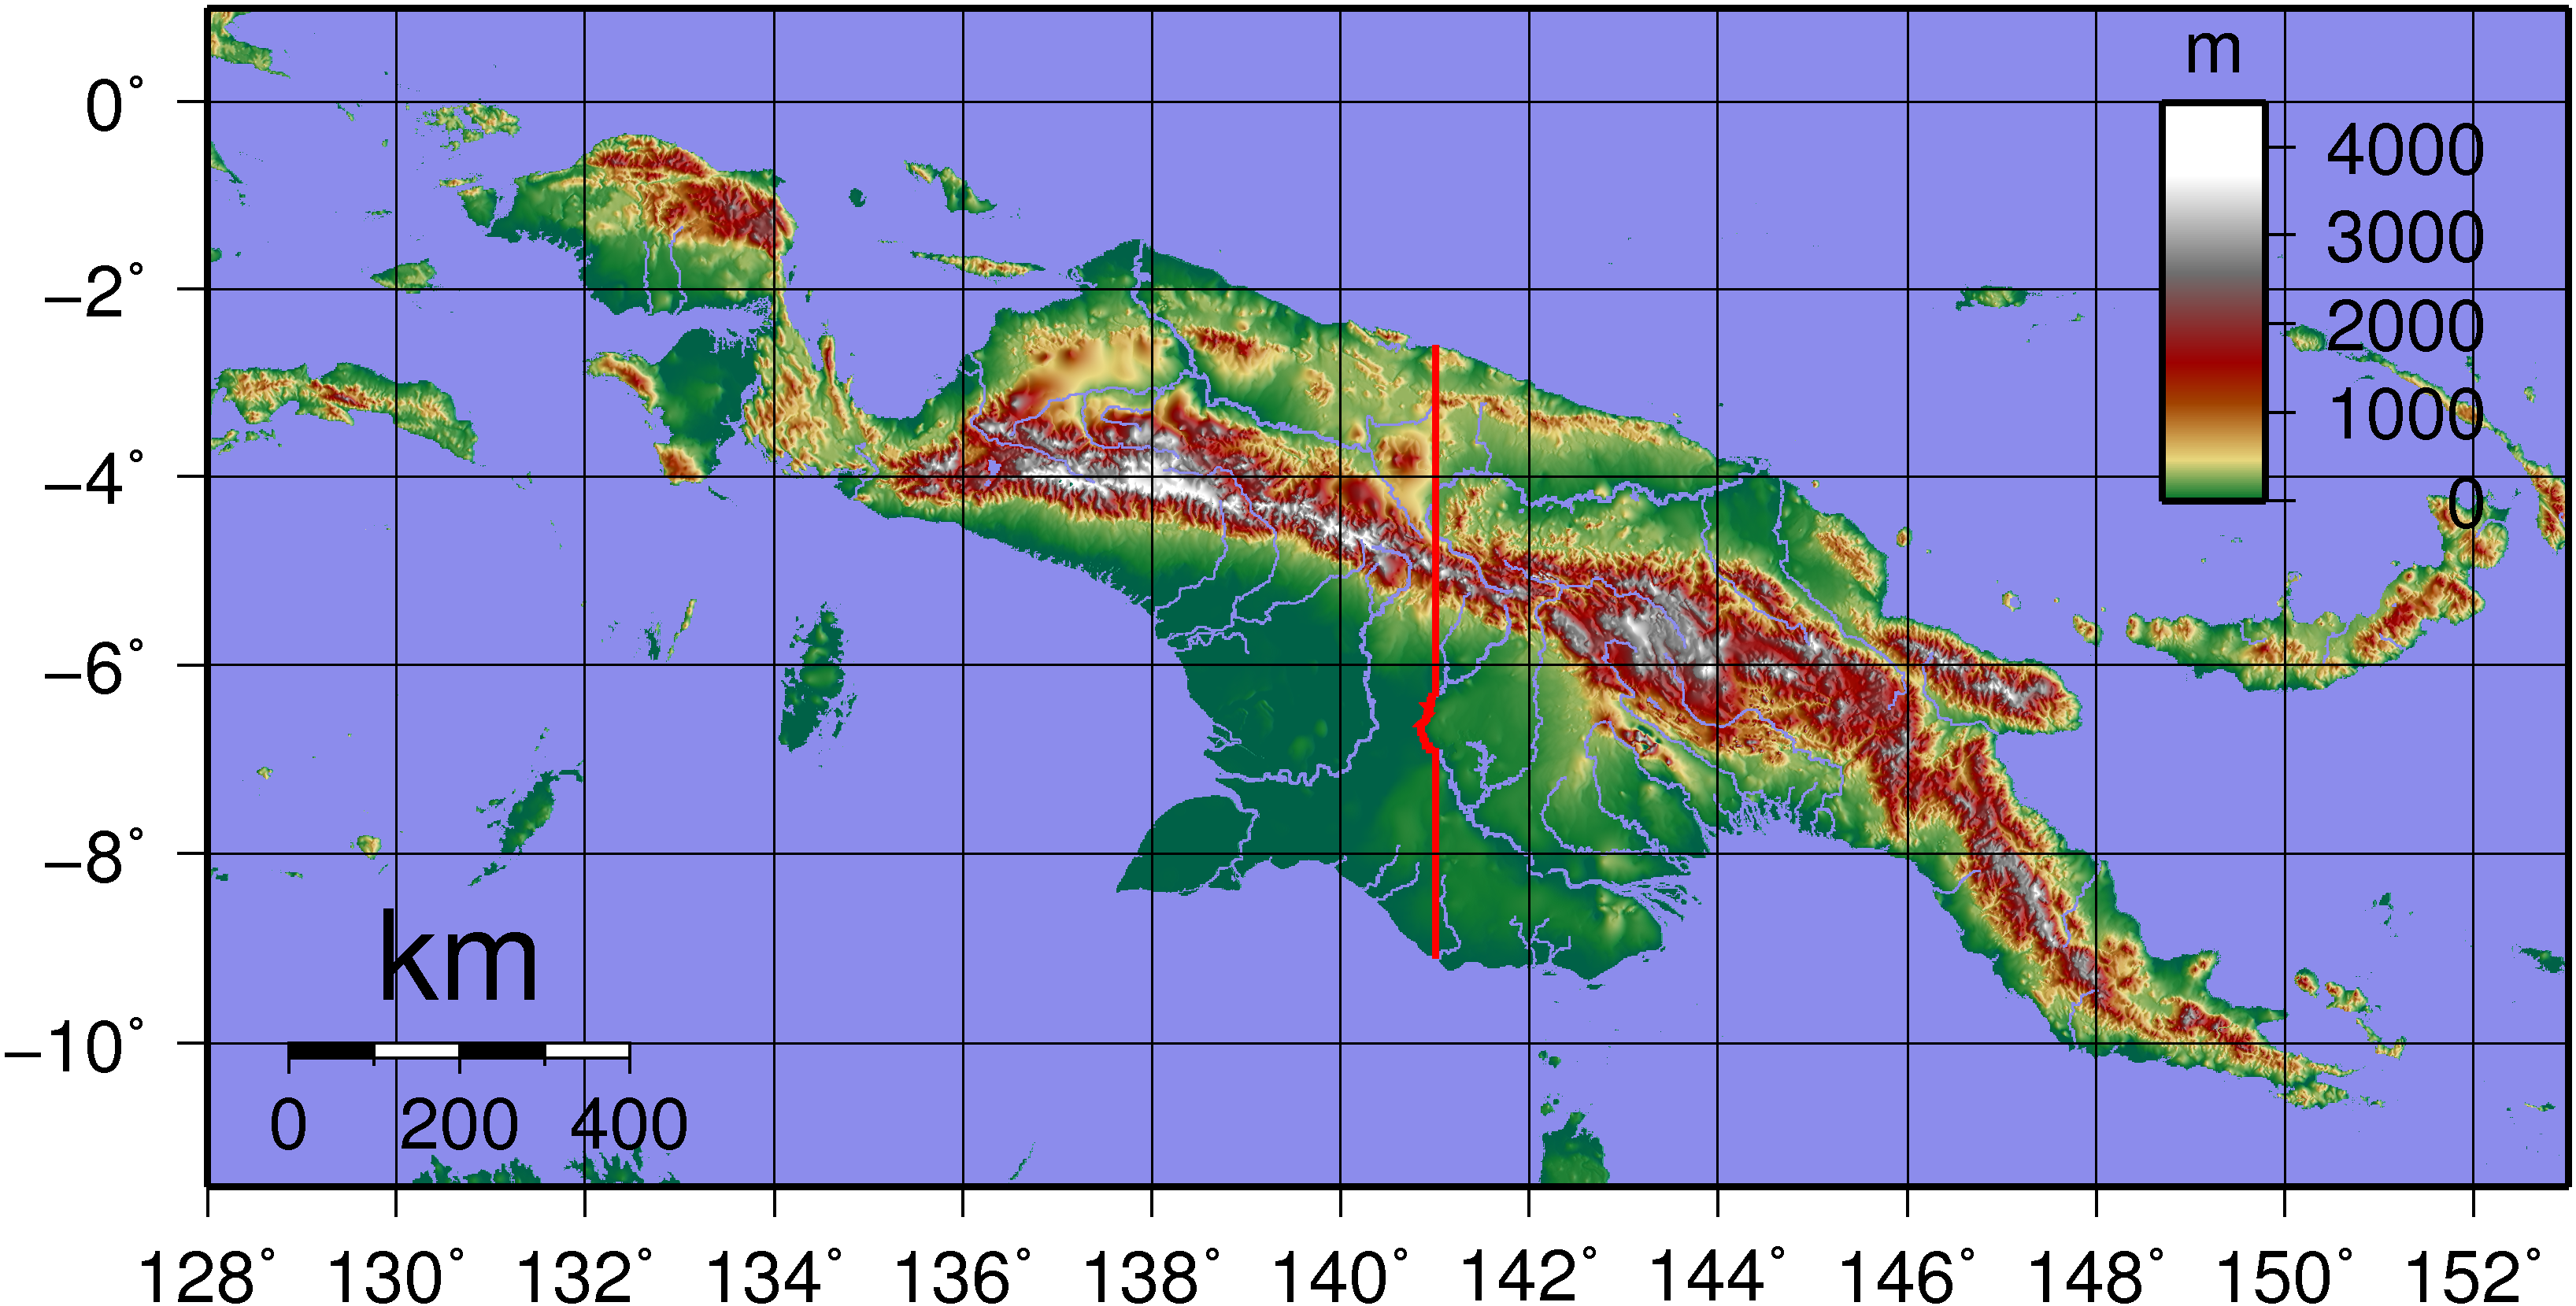 File:New Guinea Topography.png.